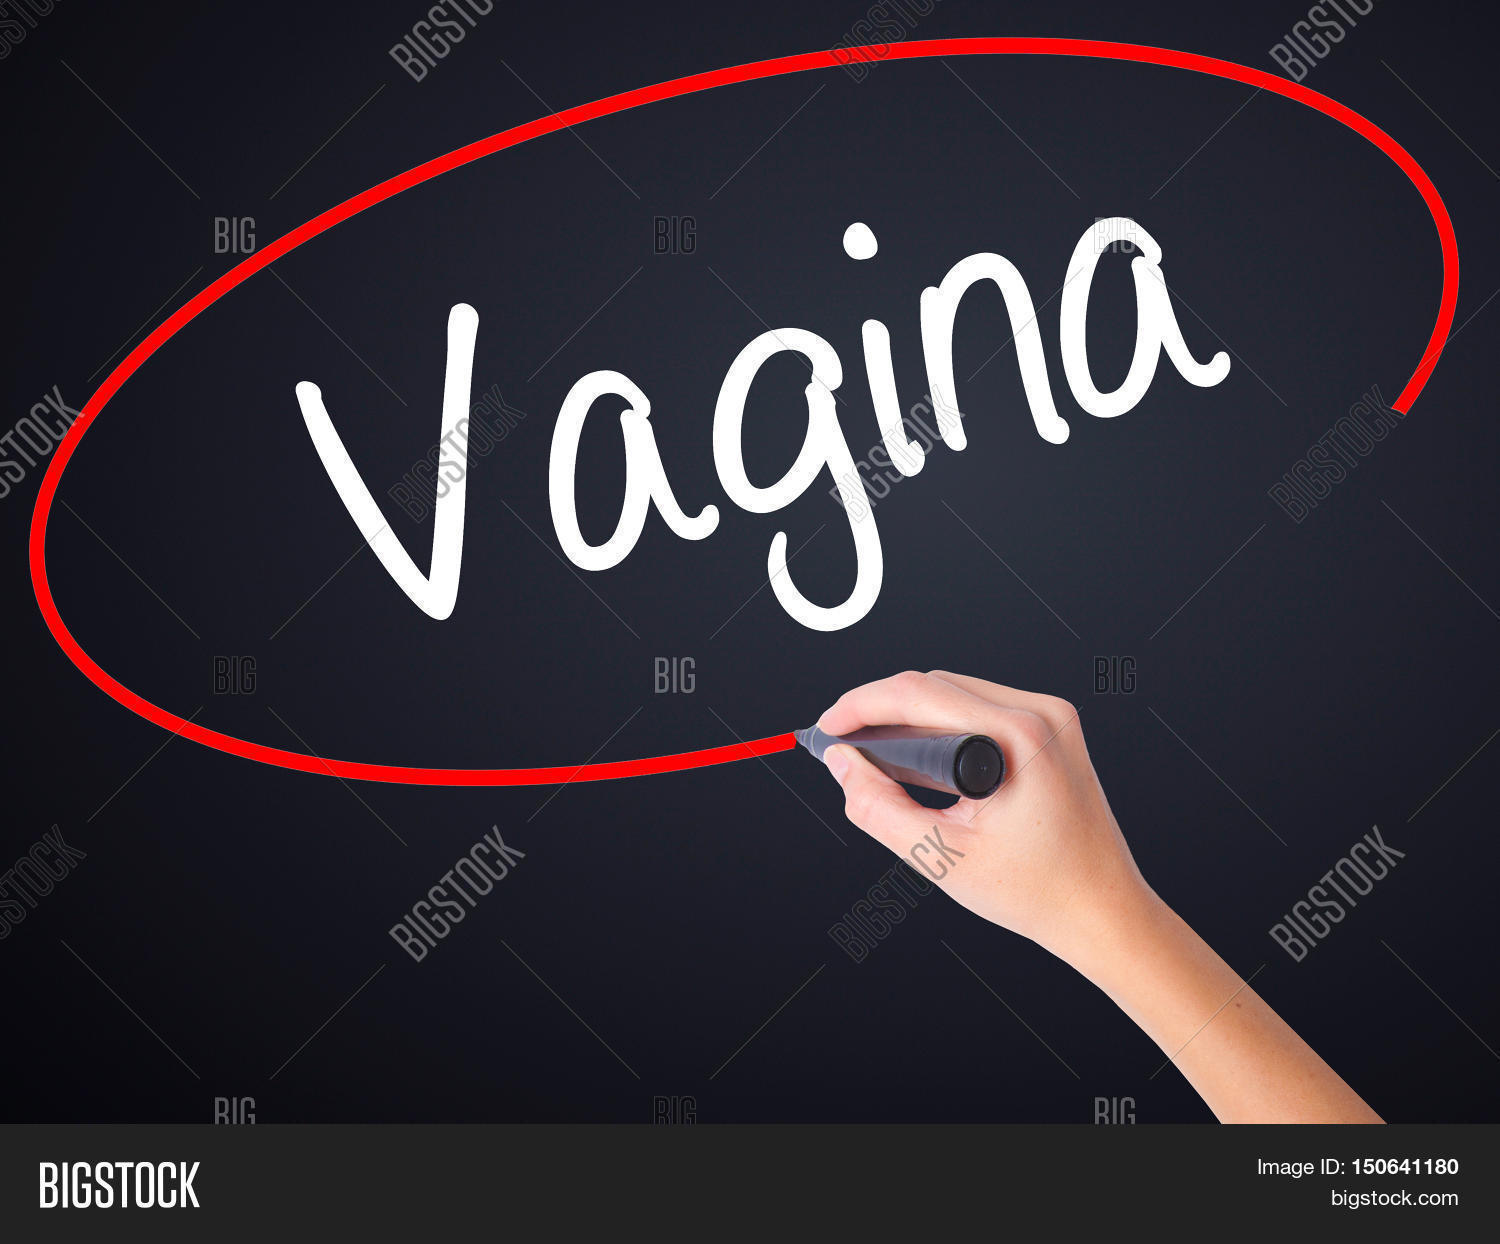 woman with a big vagina